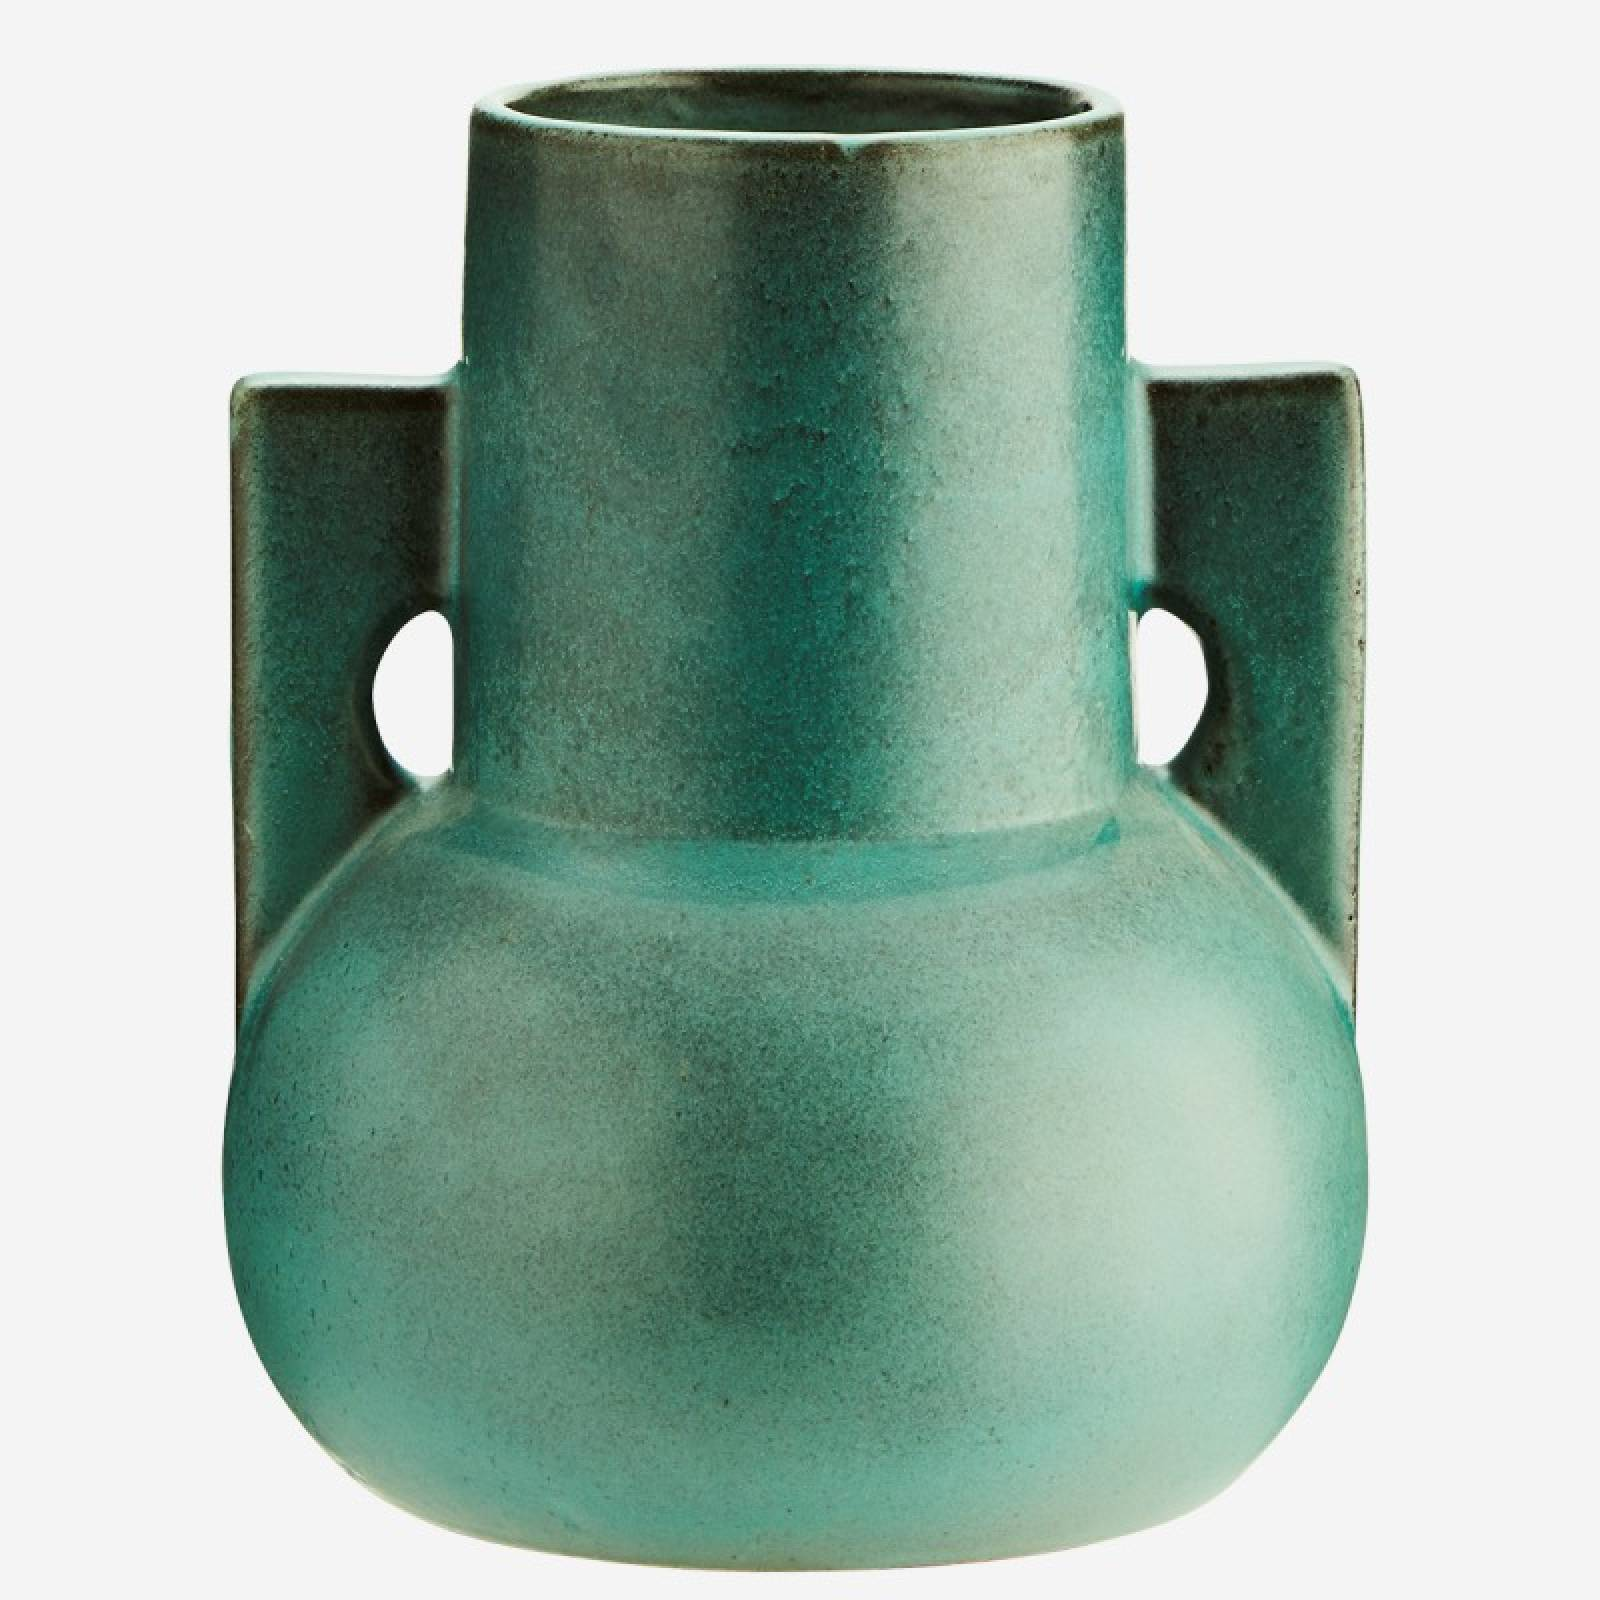 Green Terracotta Vase with Angular Handles